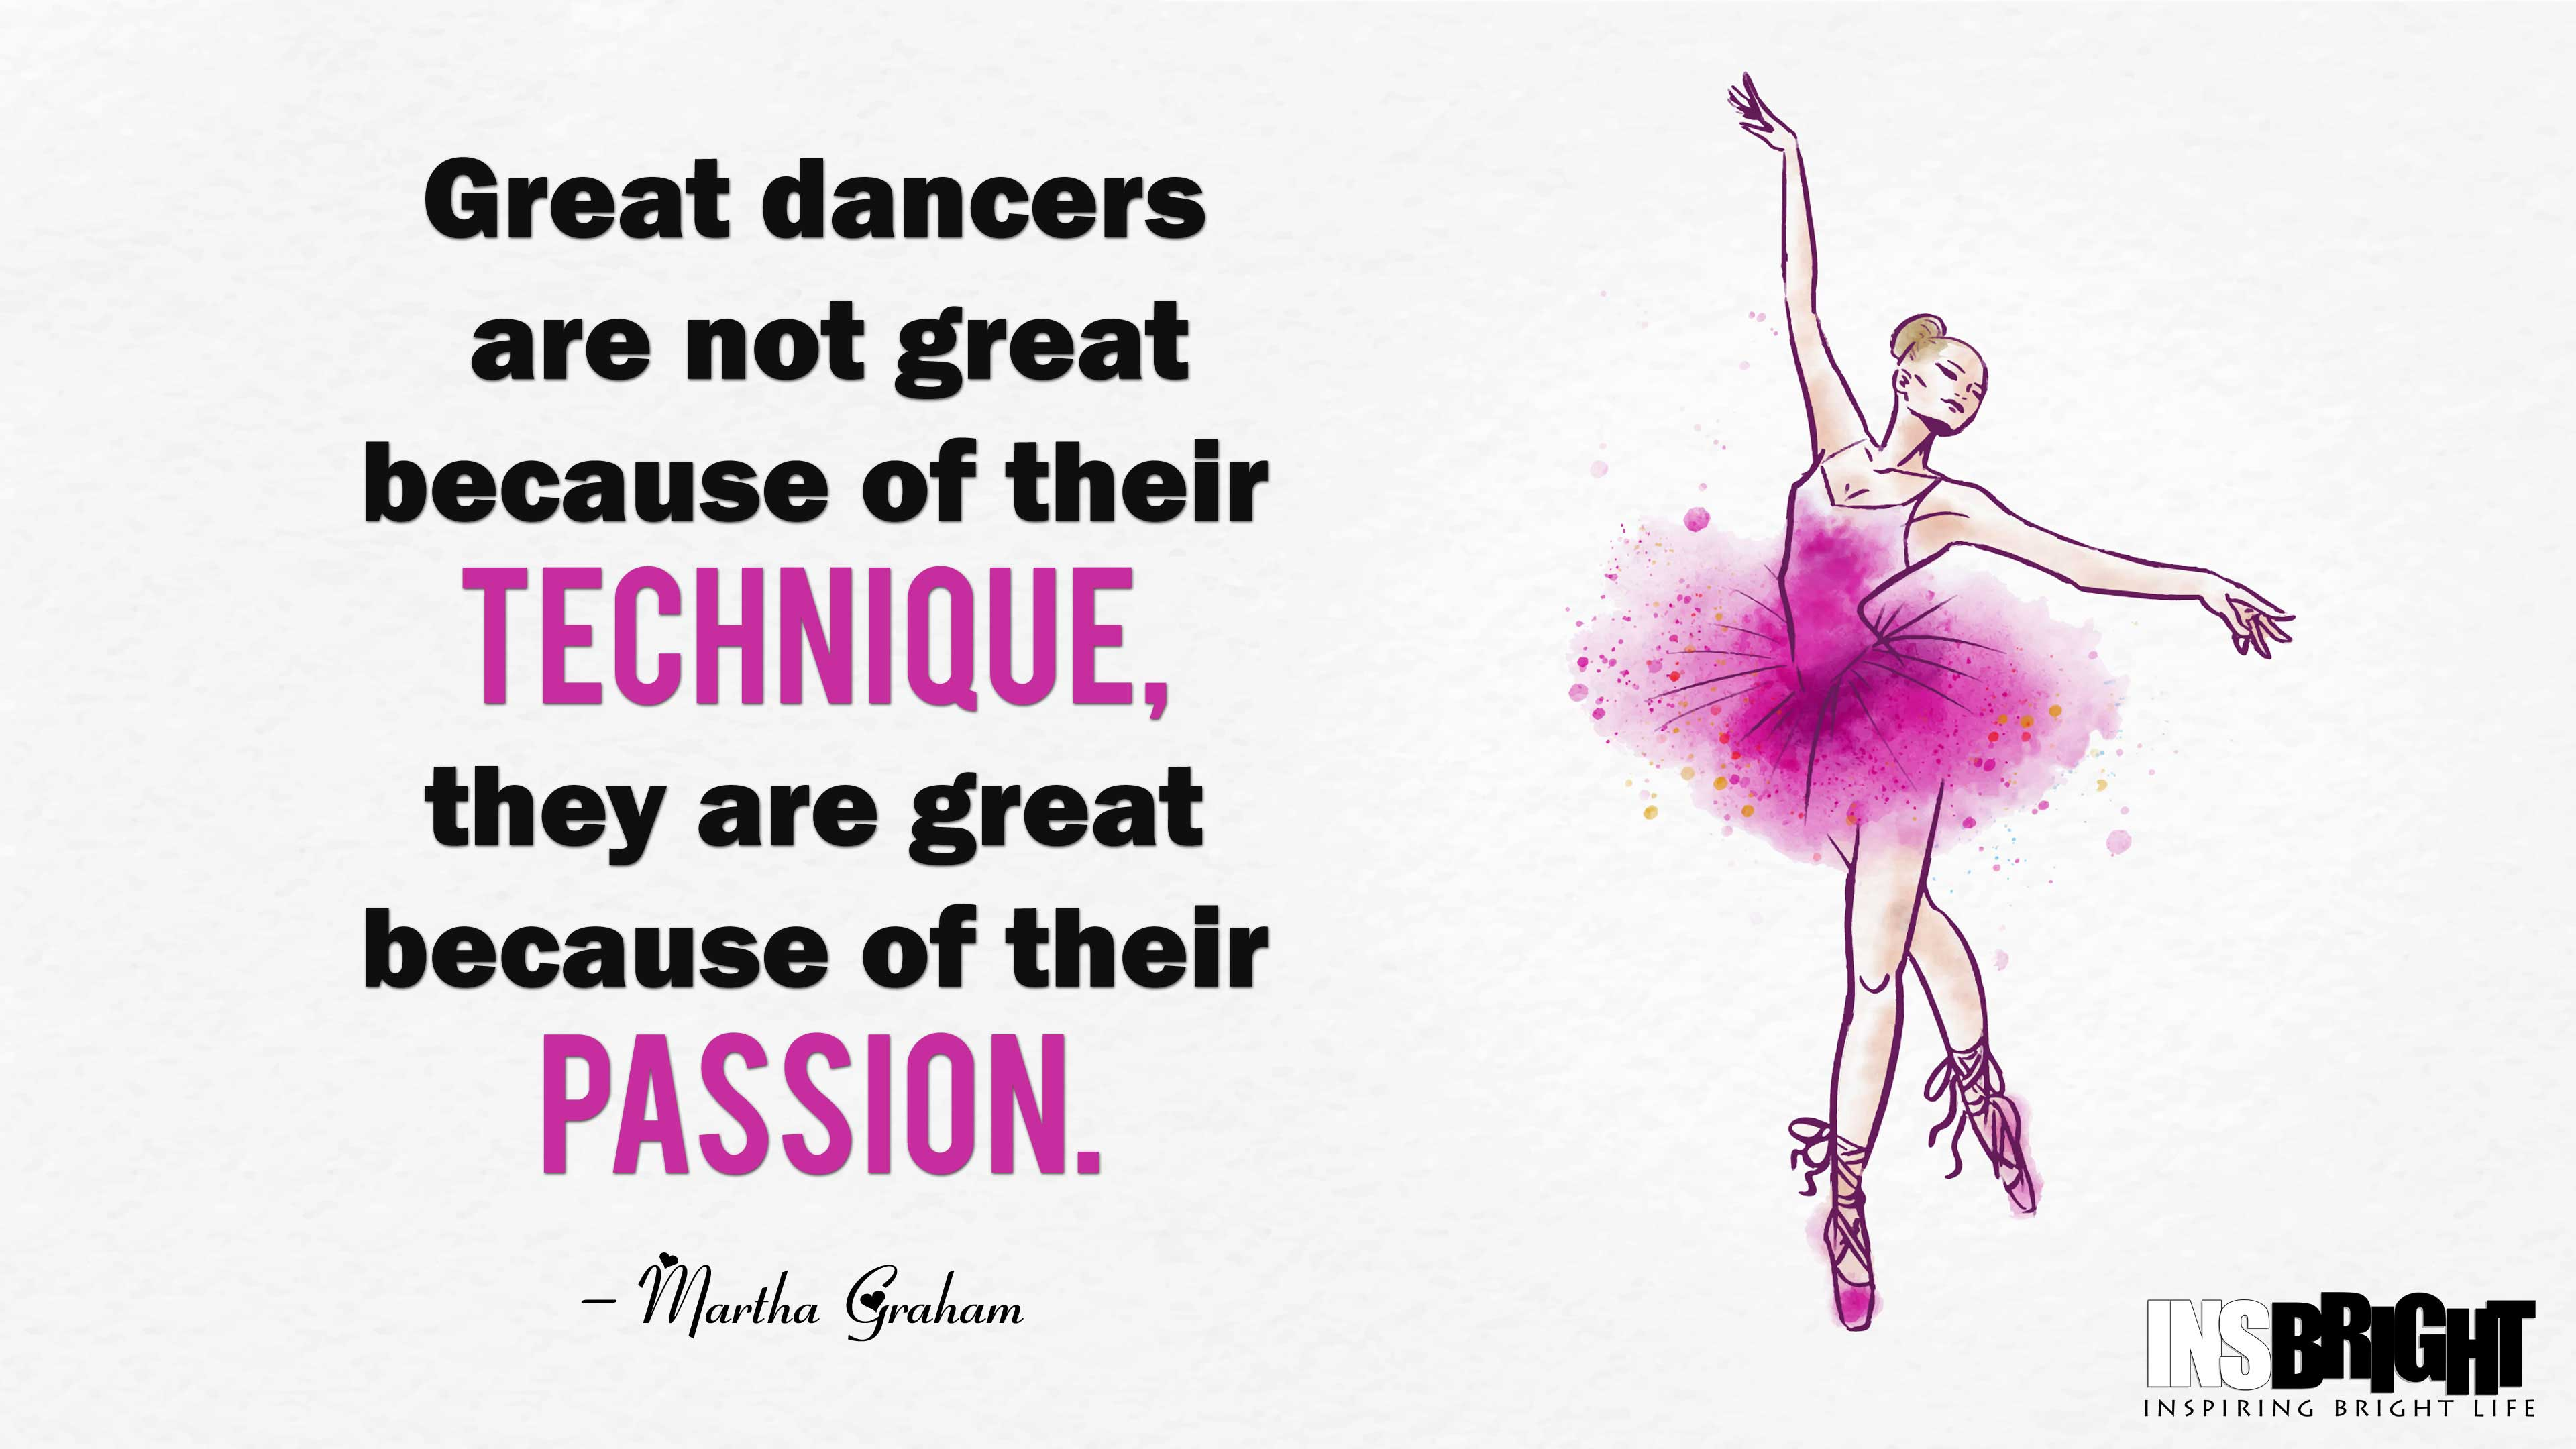 Life Insurance Sayings Quotes Inspirational Dance Quotes Delectable 75 Inspirational Dance